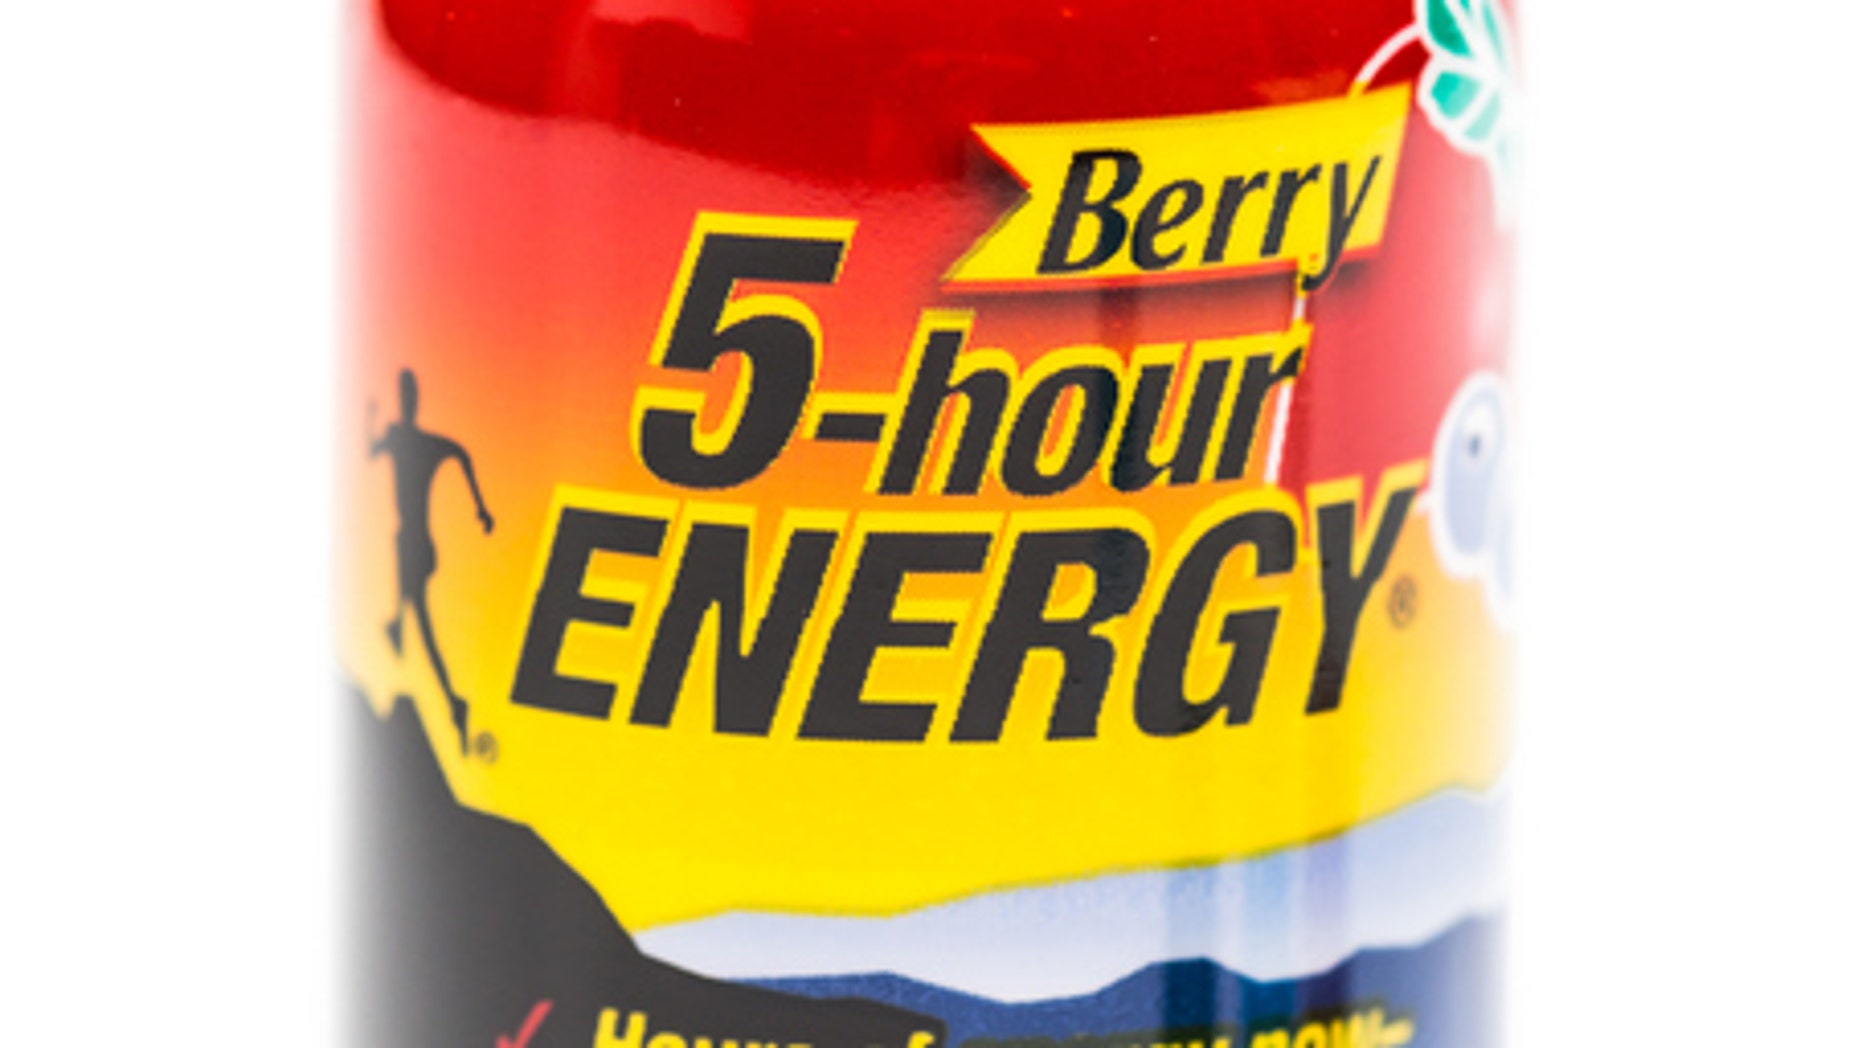 5-Hour Energy has to pay up after a judge ruled that ads for the drink misled the public.